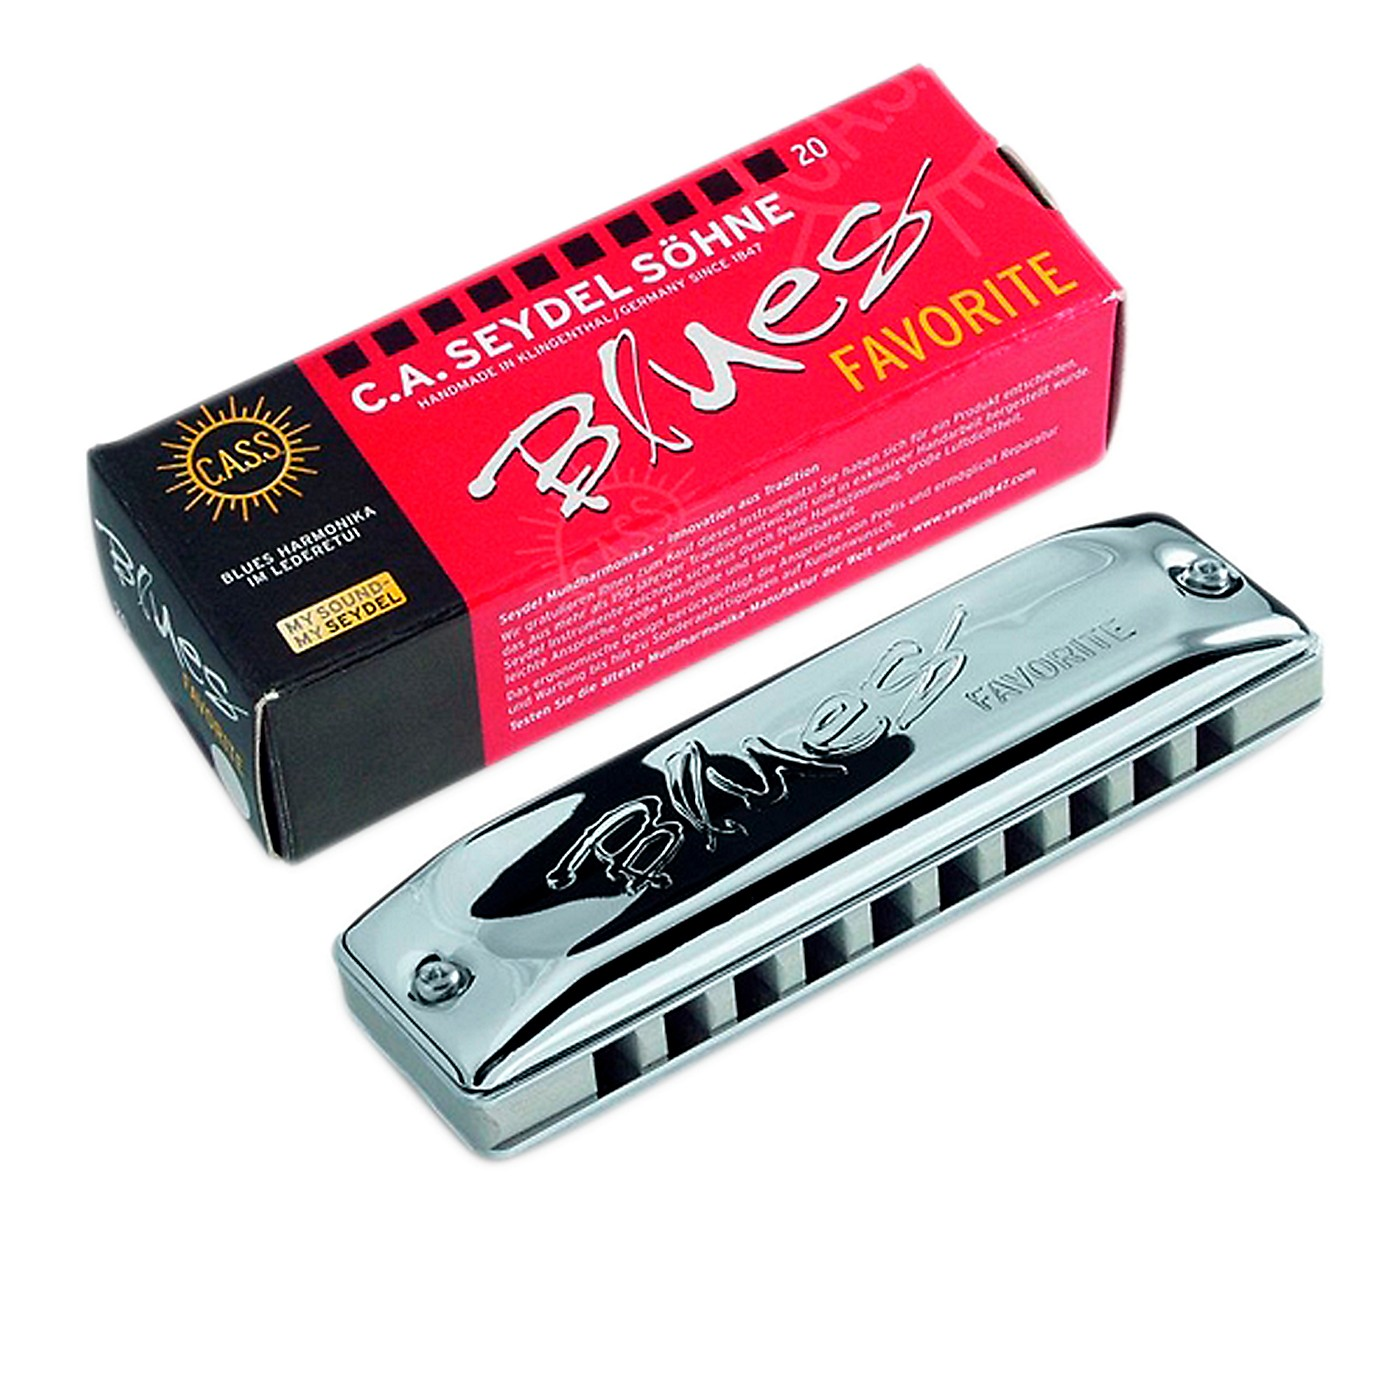 SEYDEL Blues Favorite Harmonica thumbnail